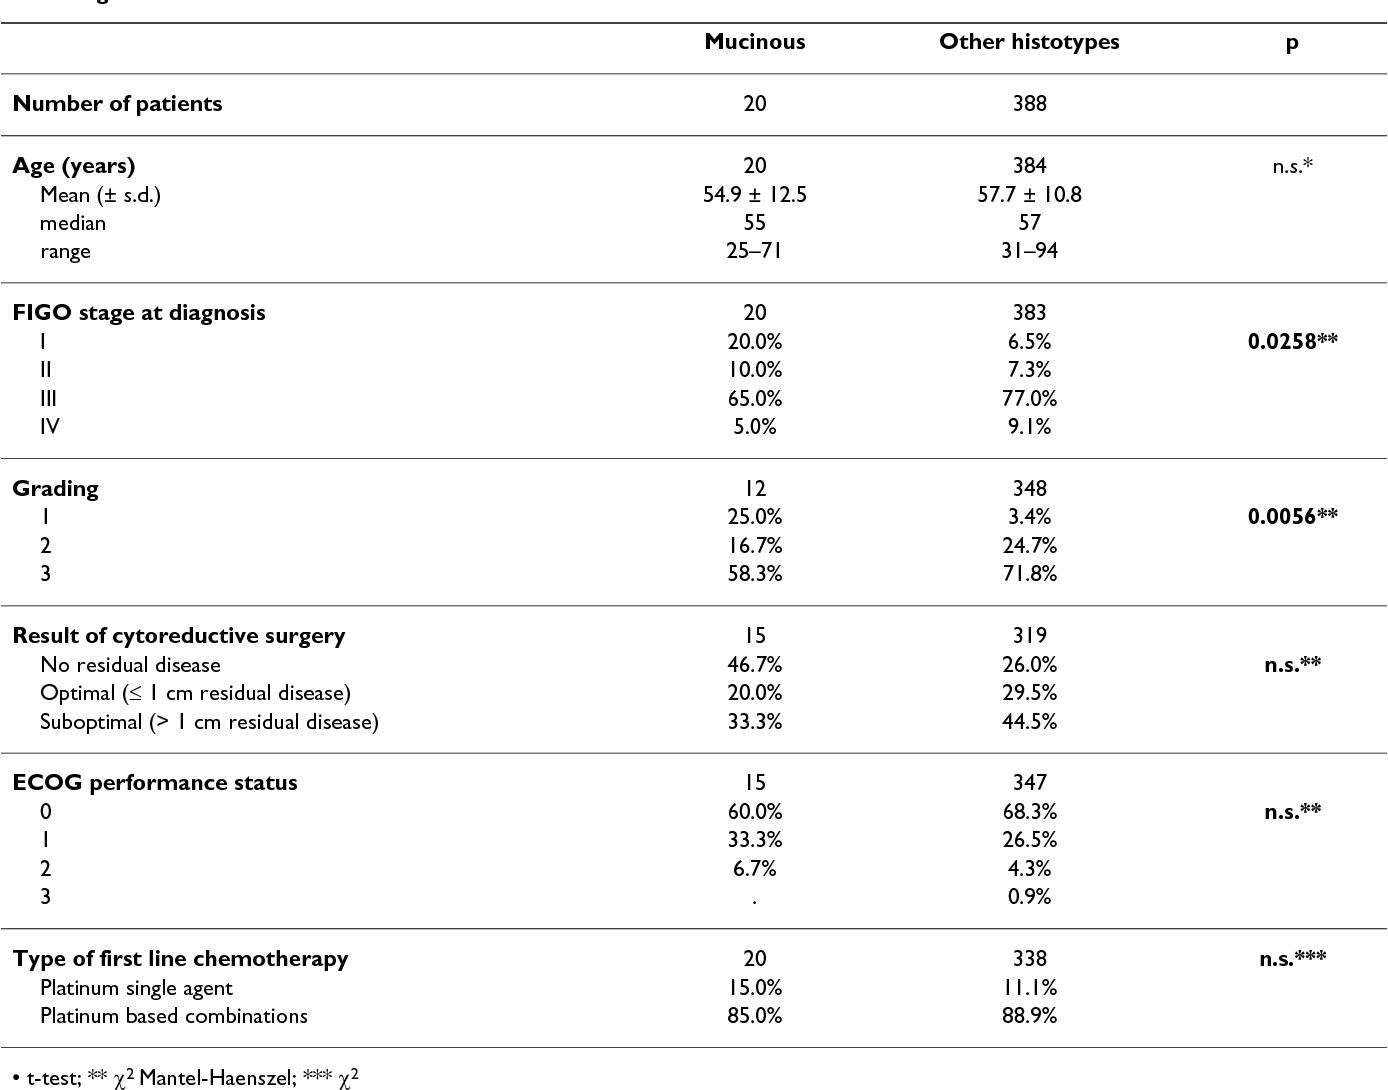 Activity Of Chemotherapy In Mucinous Ovarian Cancer With A Recurrence Free Interval Of More Than 6 Months Results From The Socrates Retrospective Study Semantic Scholar